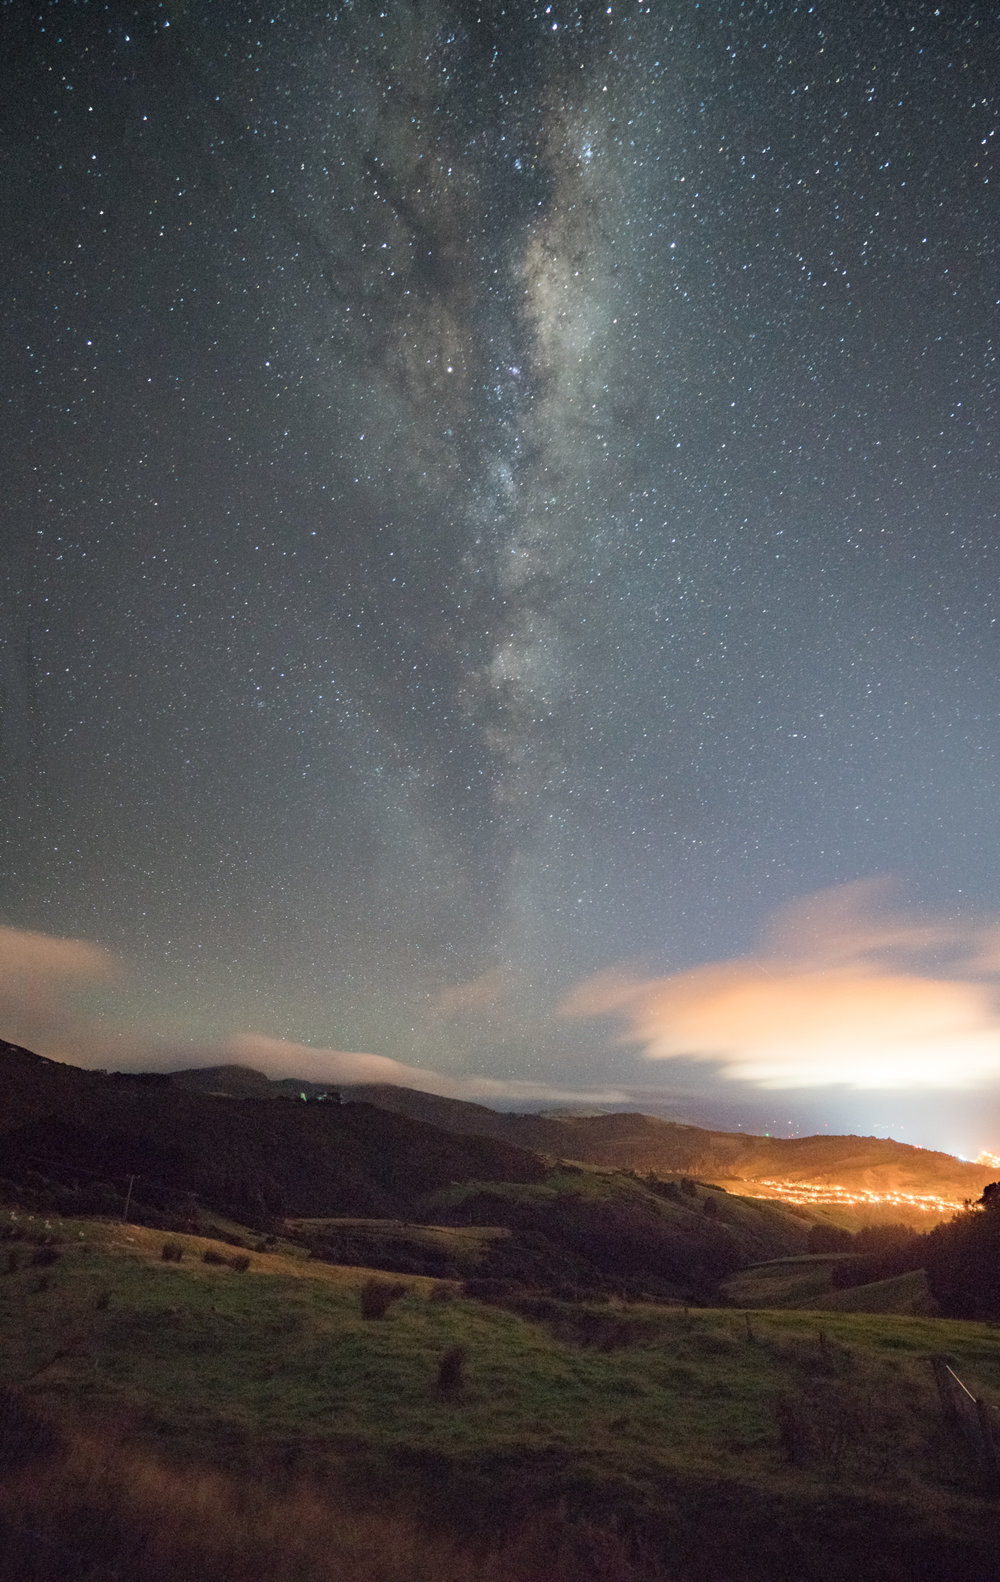 Milky Way rising over Port Chalmers Sony A7Rii - 16-35 f4 15sec | f4 | ISO 6400 | 16mm